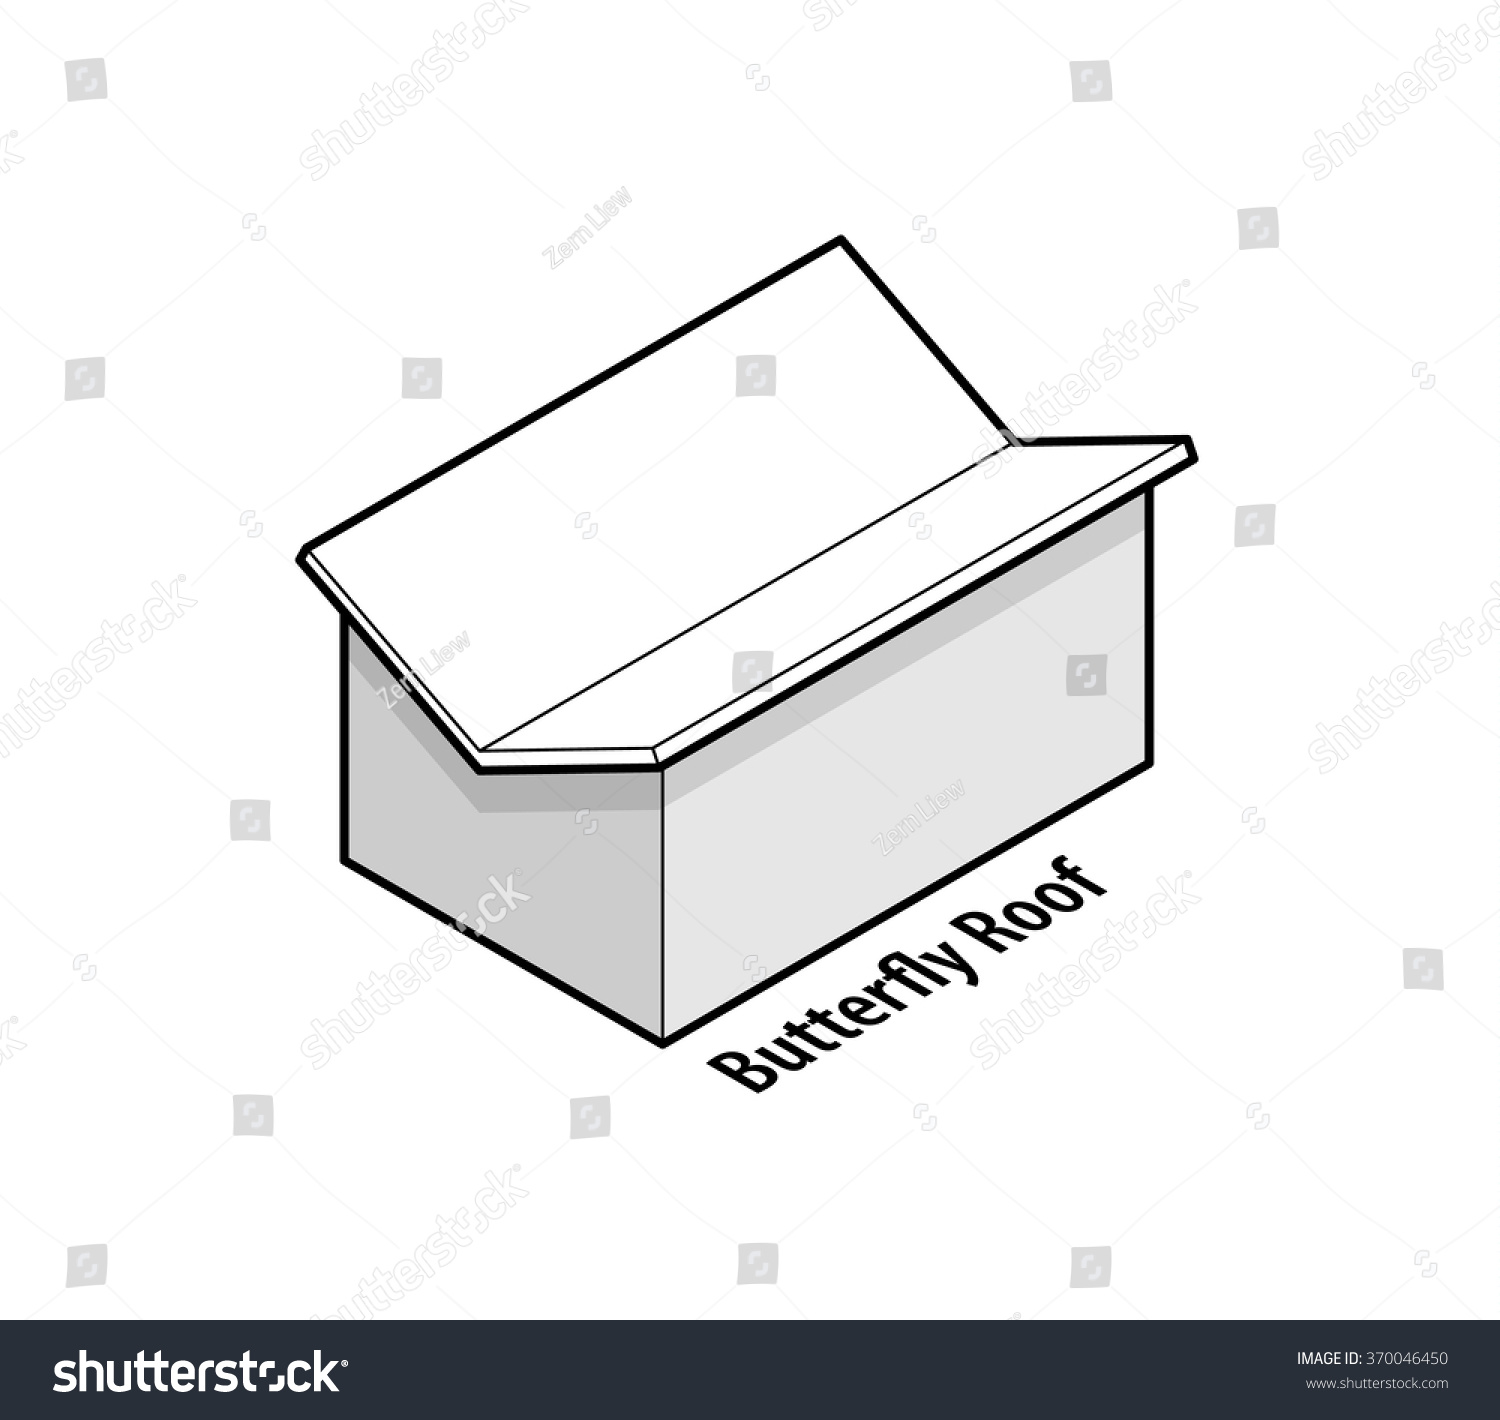 building roof type butterfly roof stock vector